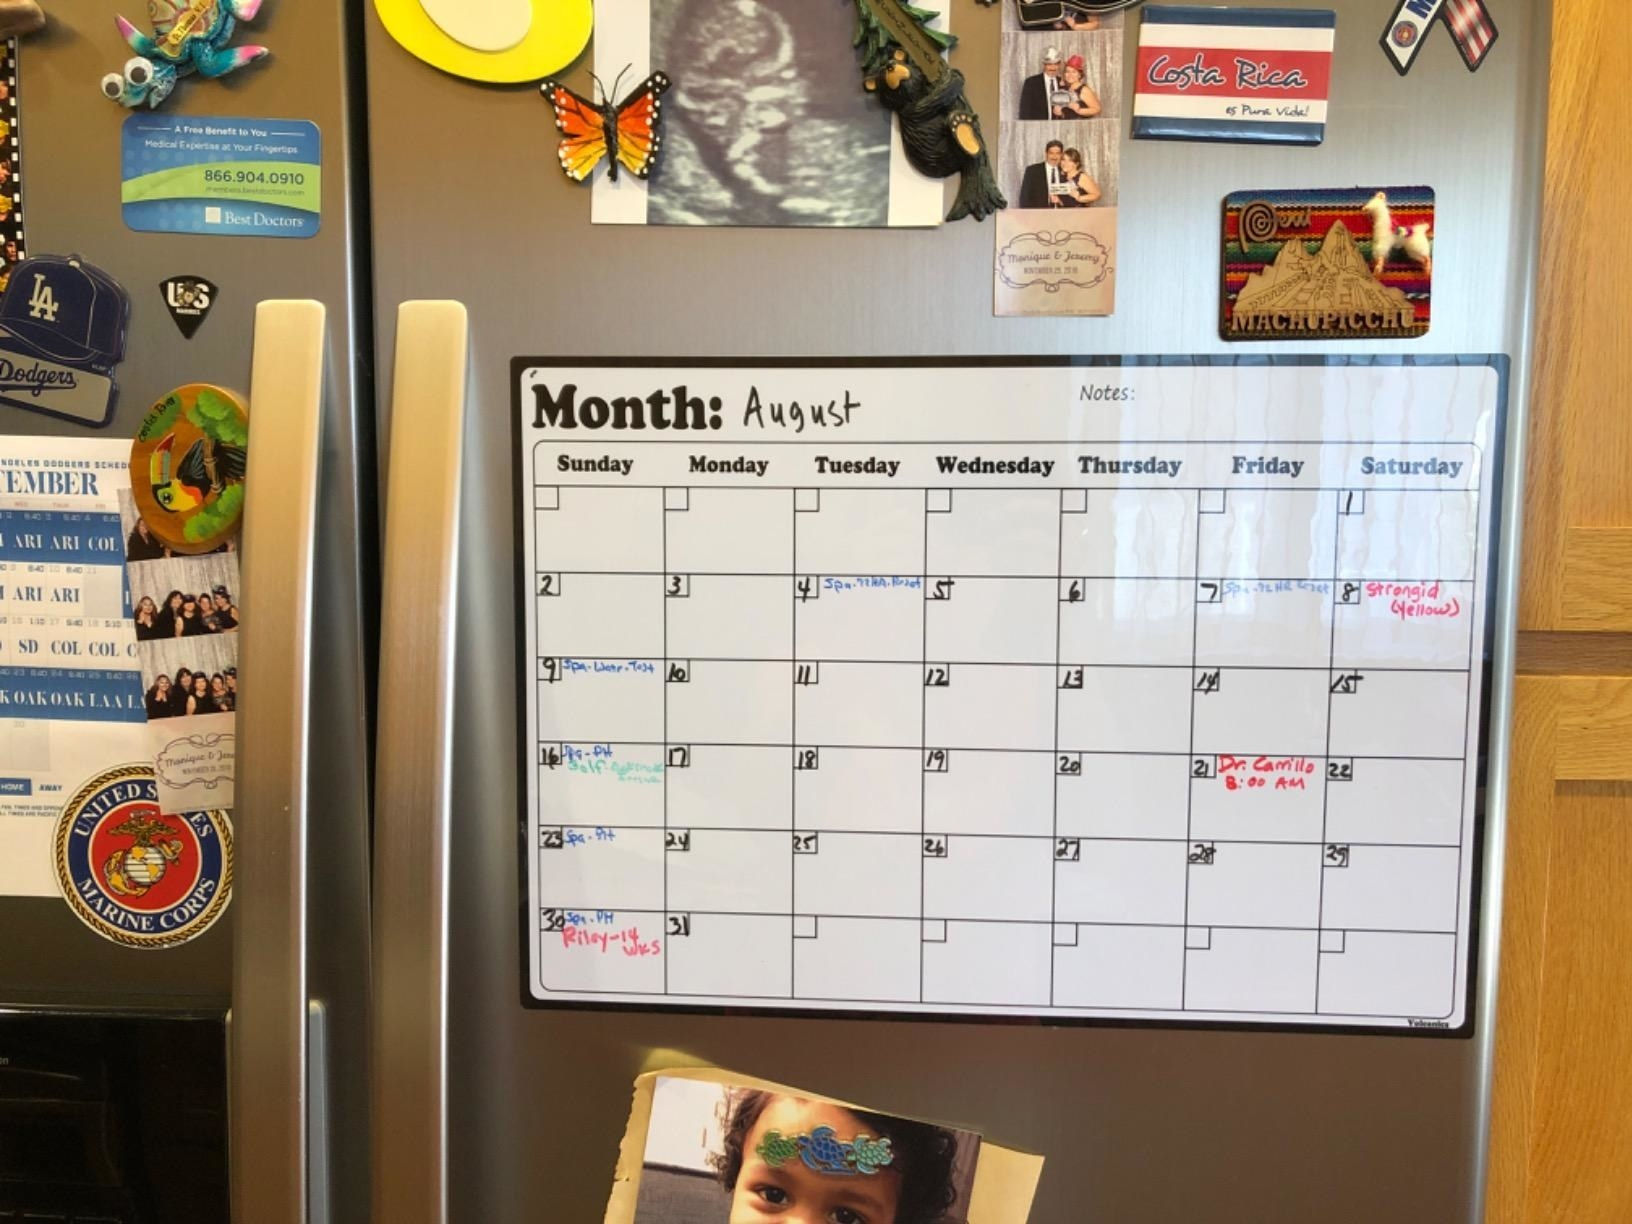 reviewer photo showing the calendar on their fridge surrounded by photos and magnets